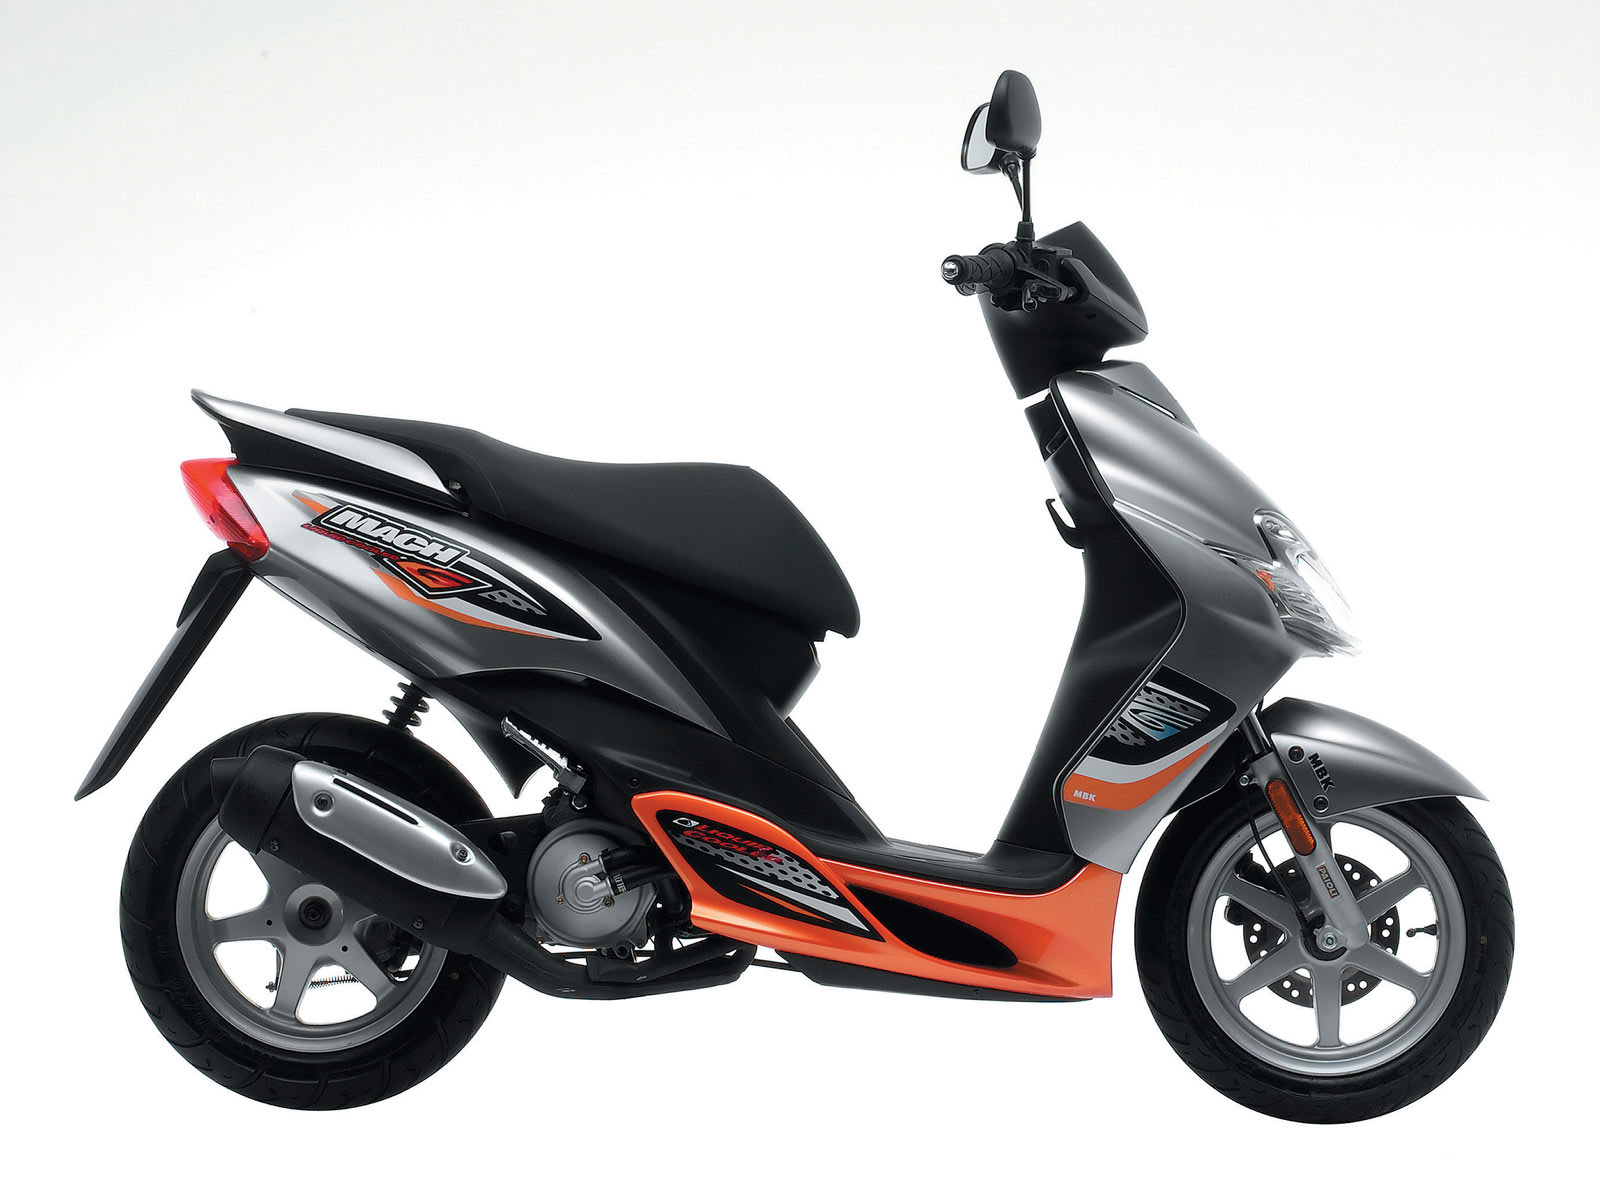 2006 mbk machg lc scooter picture accident lawyers information. Black Bedroom Furniture Sets. Home Design Ideas